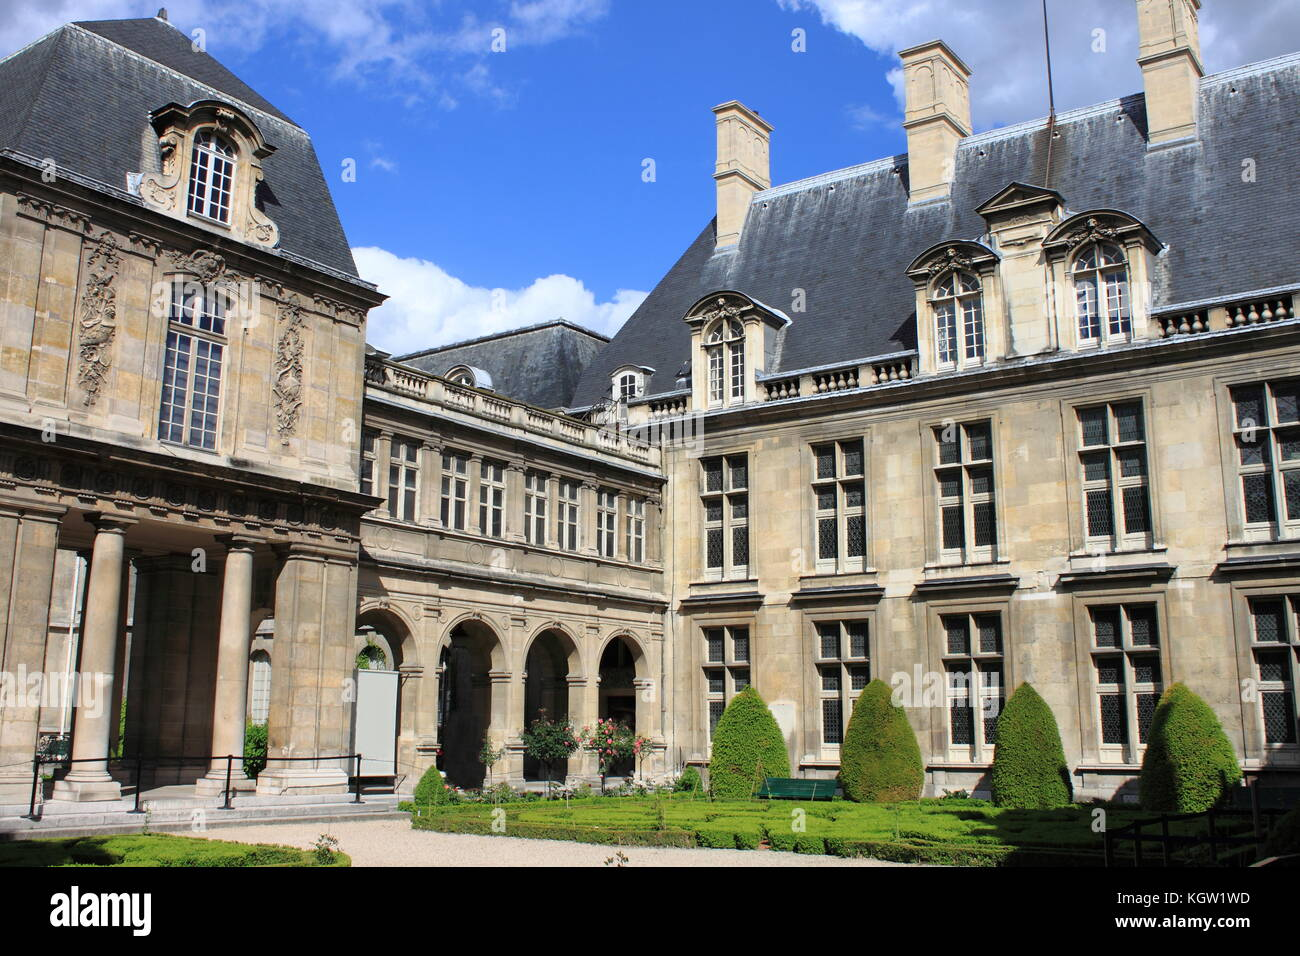 PARIS, FRANCE - MAY 24, 2015: Courtyard with the beautiful gardens of Carnavalet Museum. The museum was opened in - Stock Image